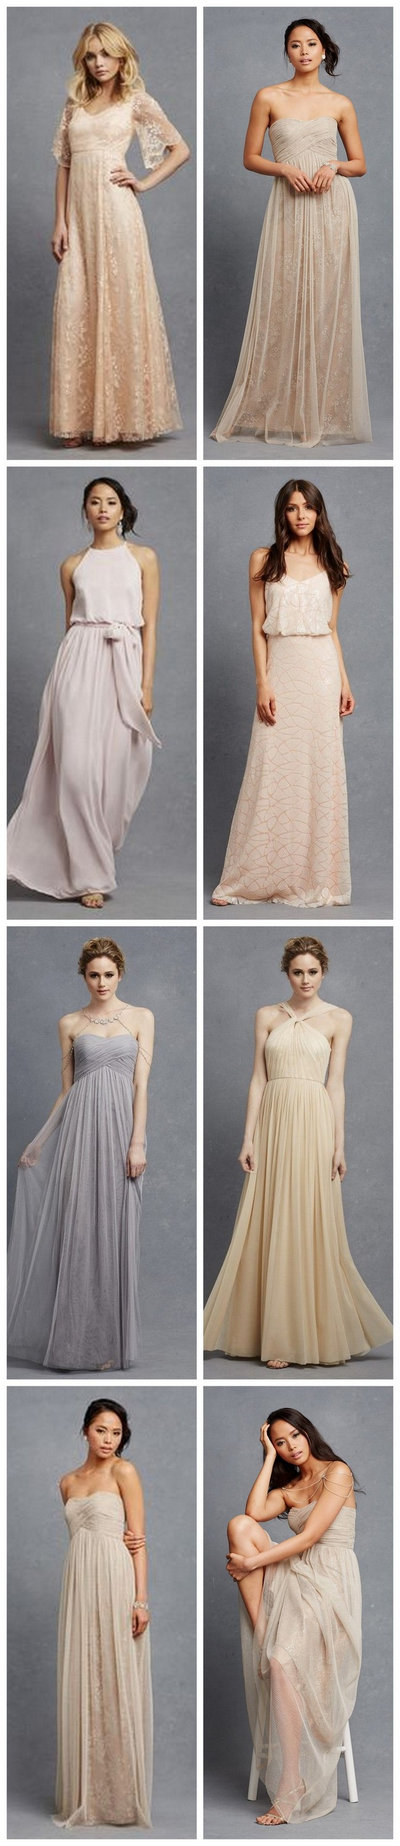 Chic, Neutral bridesmaid dresses in so many gorgeous silhouettes and fabrics!